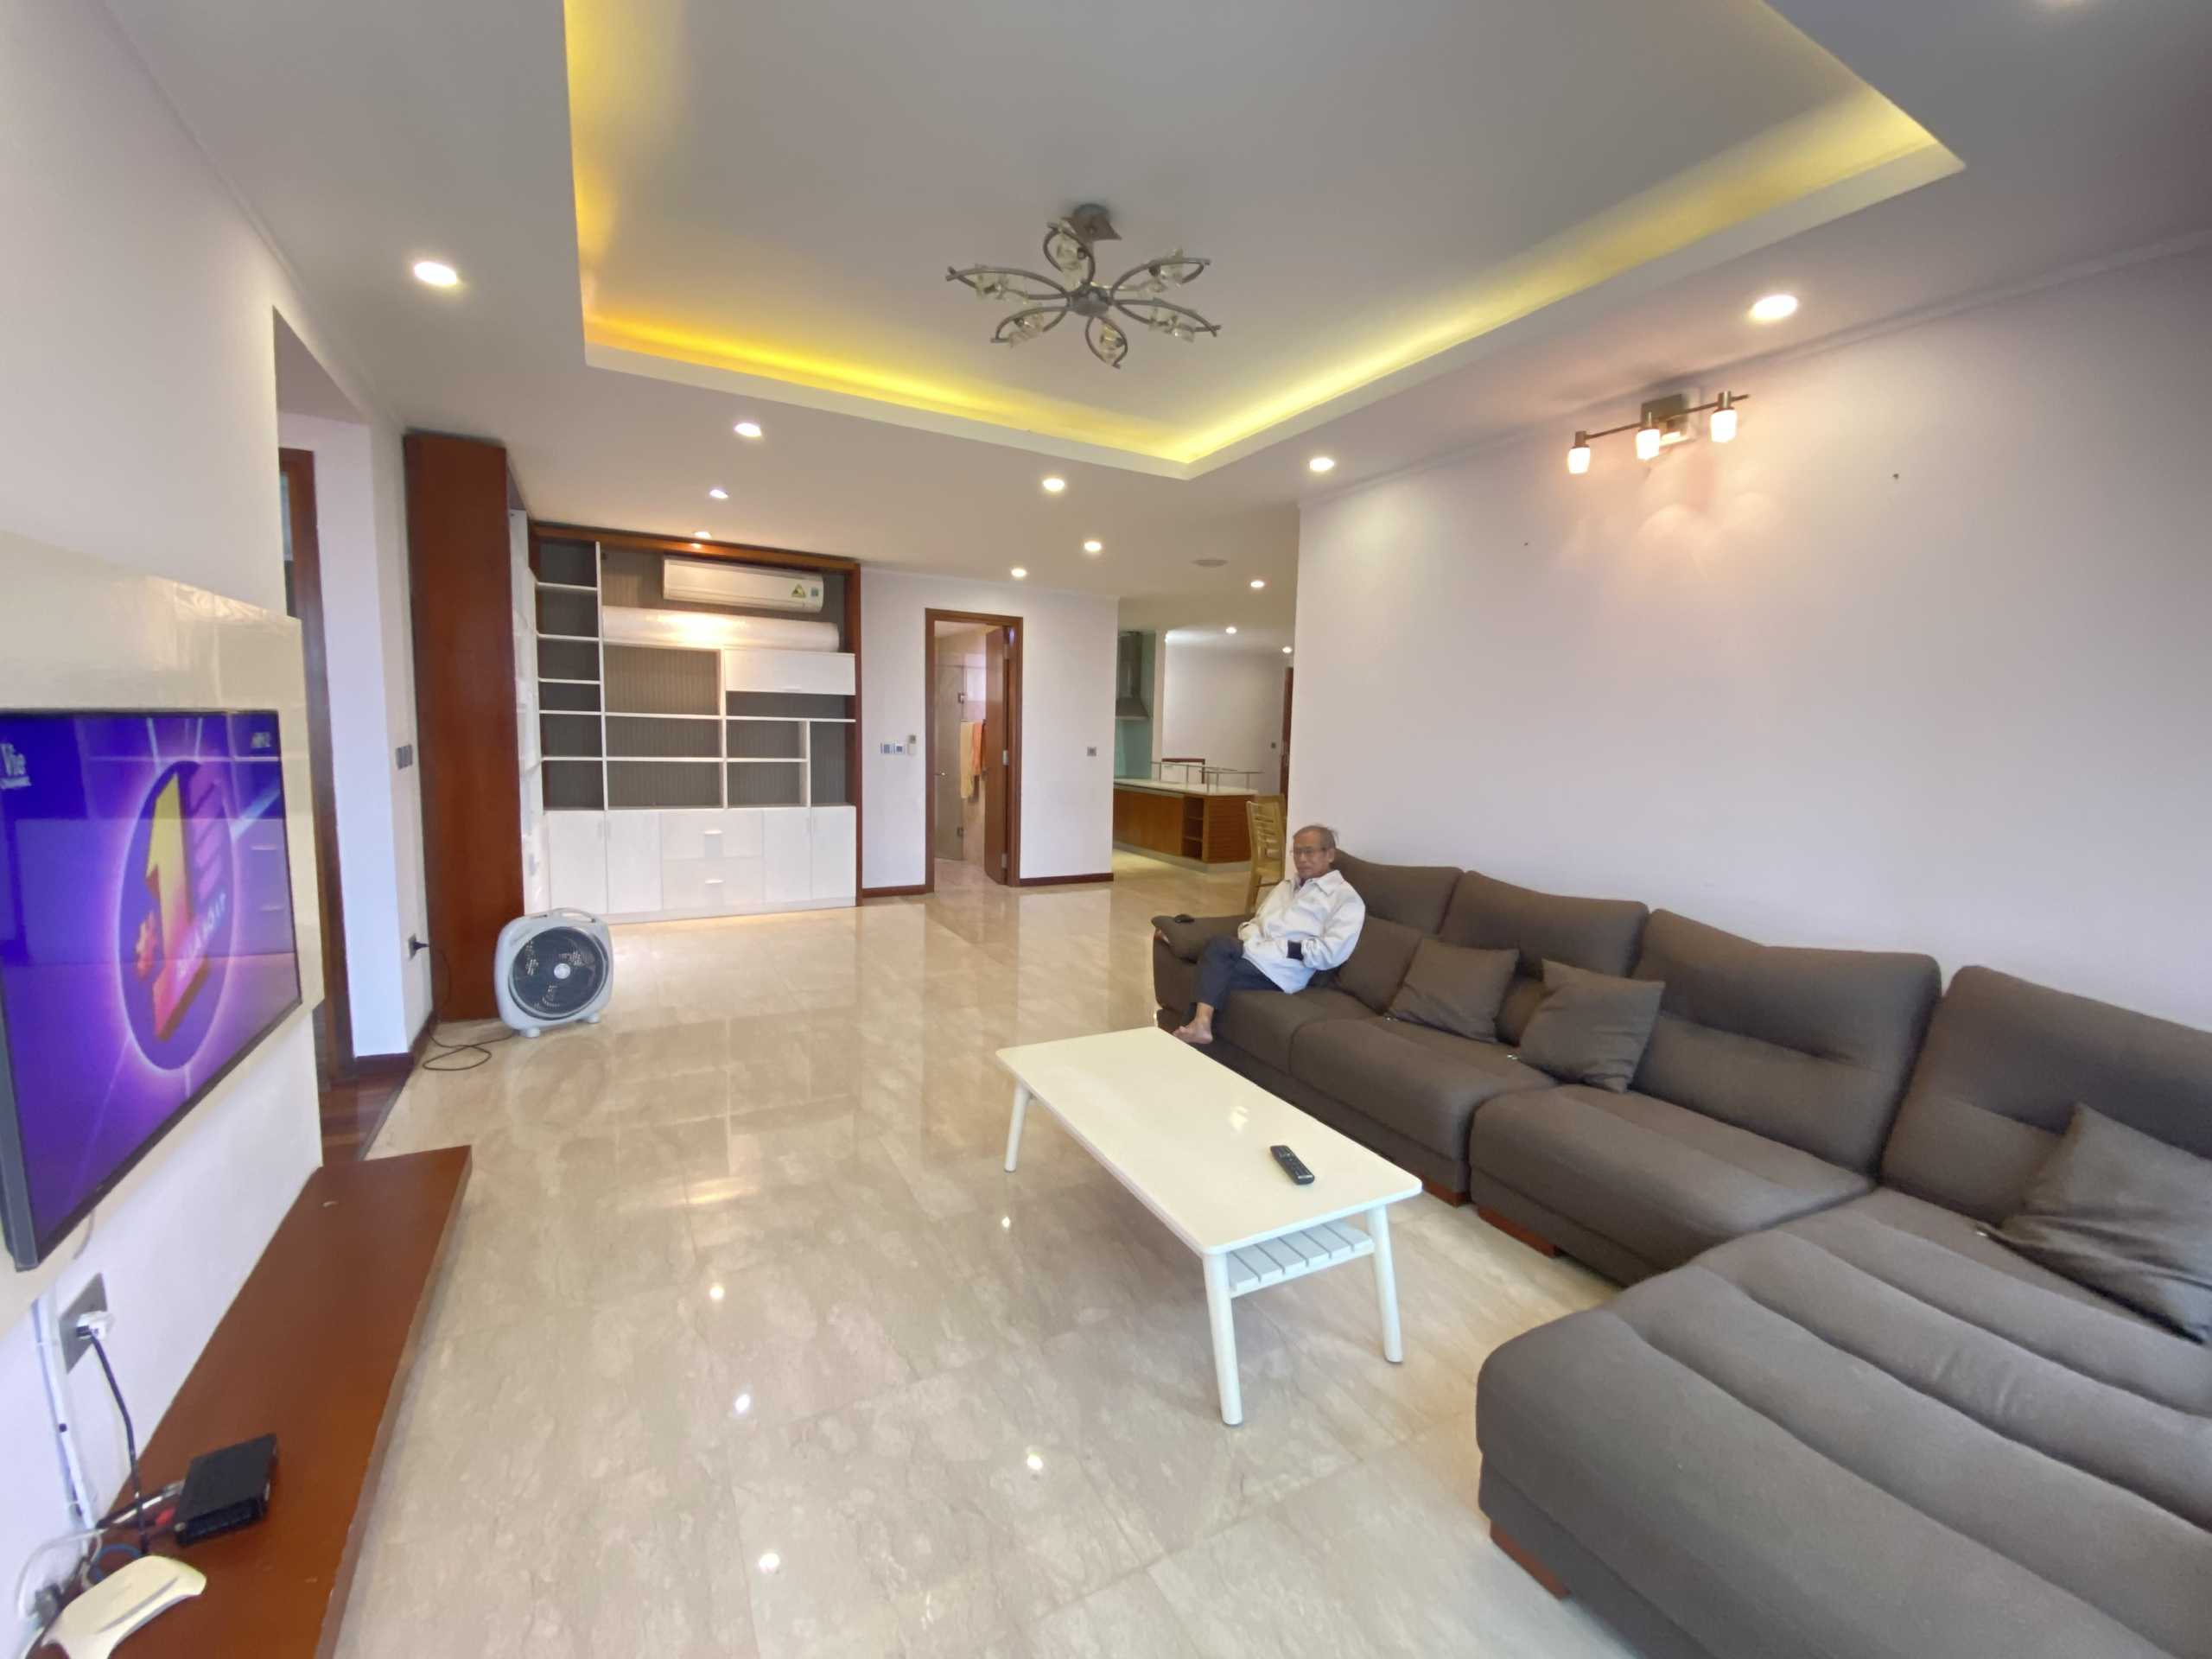 Apartment for rent with area of 154 sqm with 3 bedrooms in Ciputra L2 building